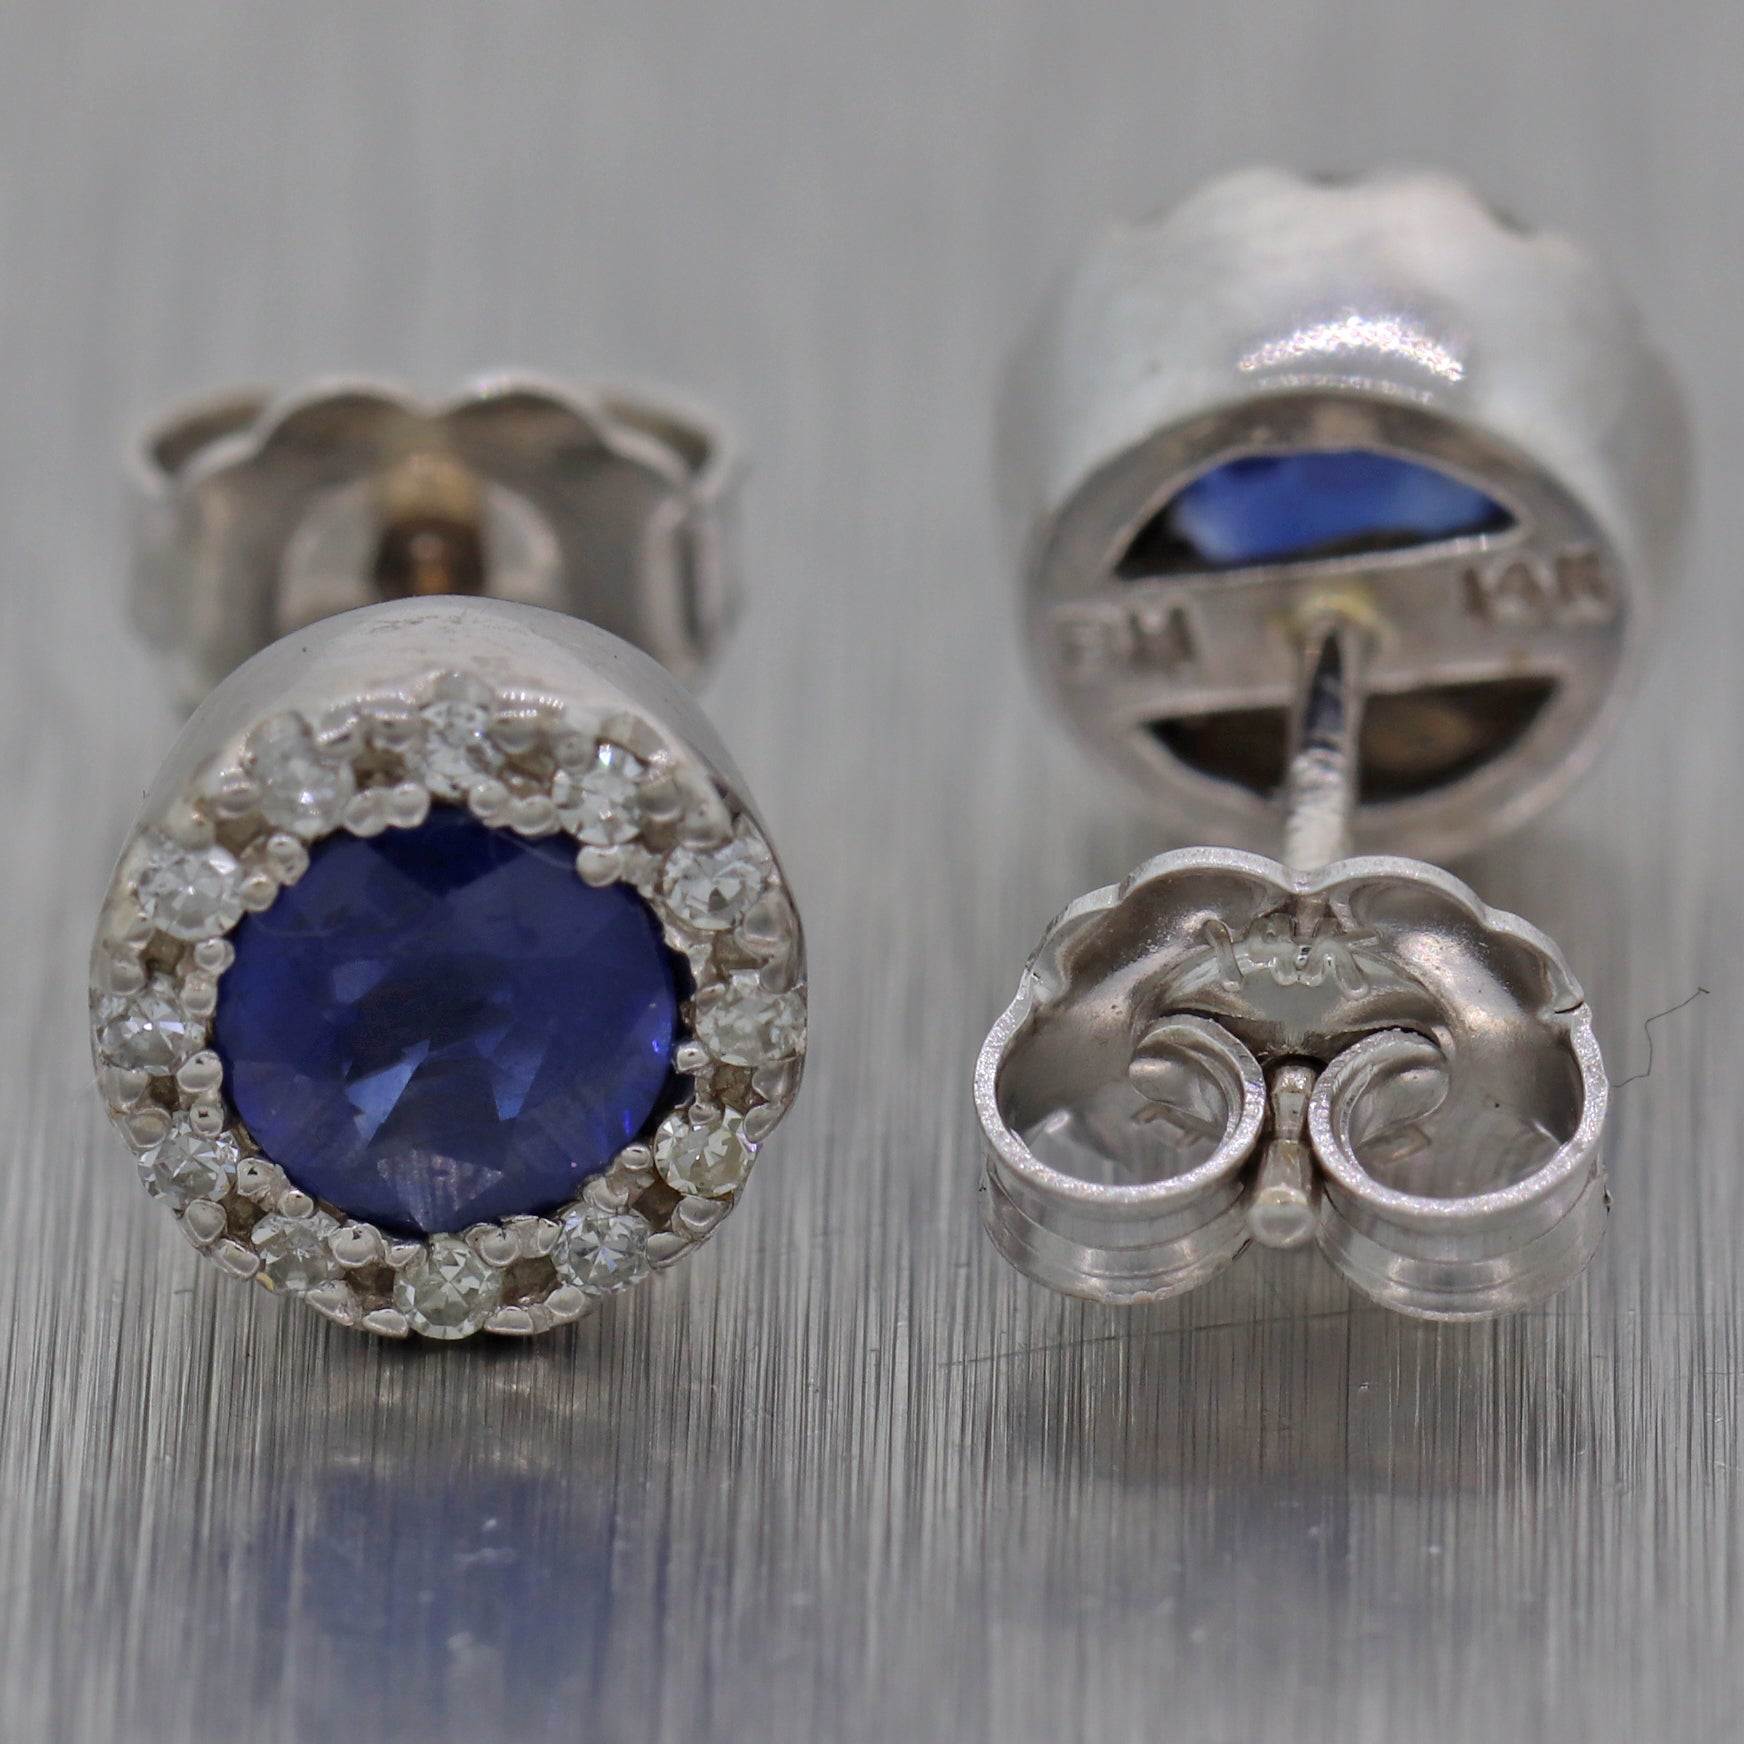 EFFY Solid 14k White Gold .58ctw Sapphire Diamond Halo Stud Earrings N8